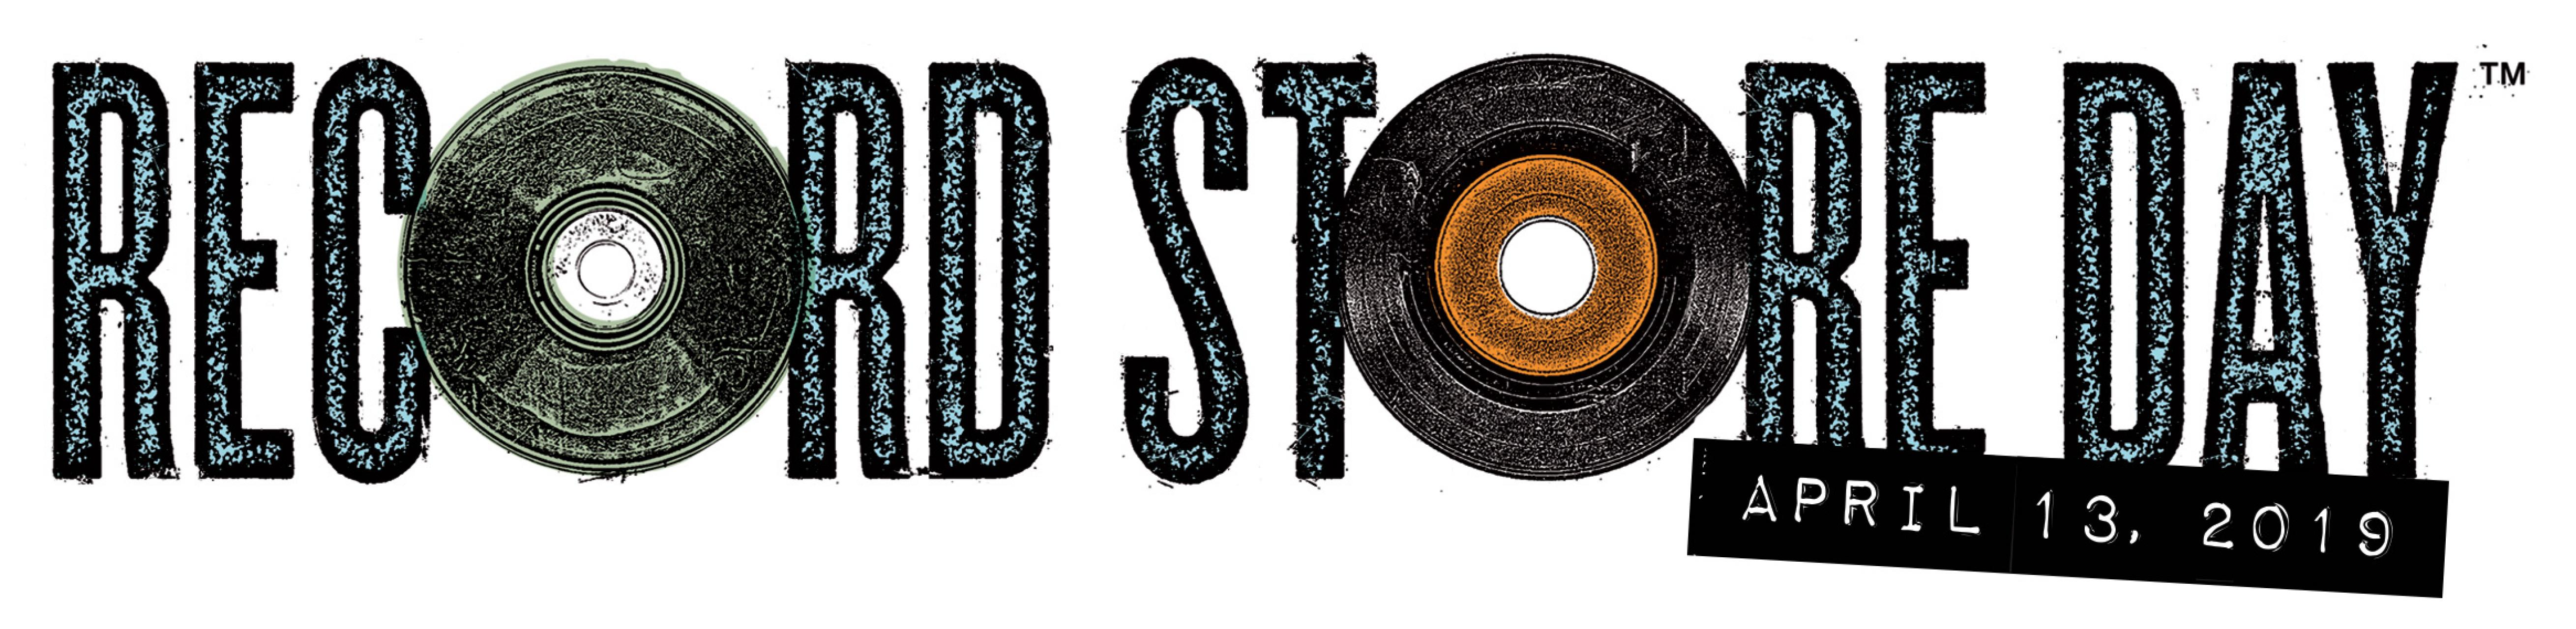 Record Store Day banner image